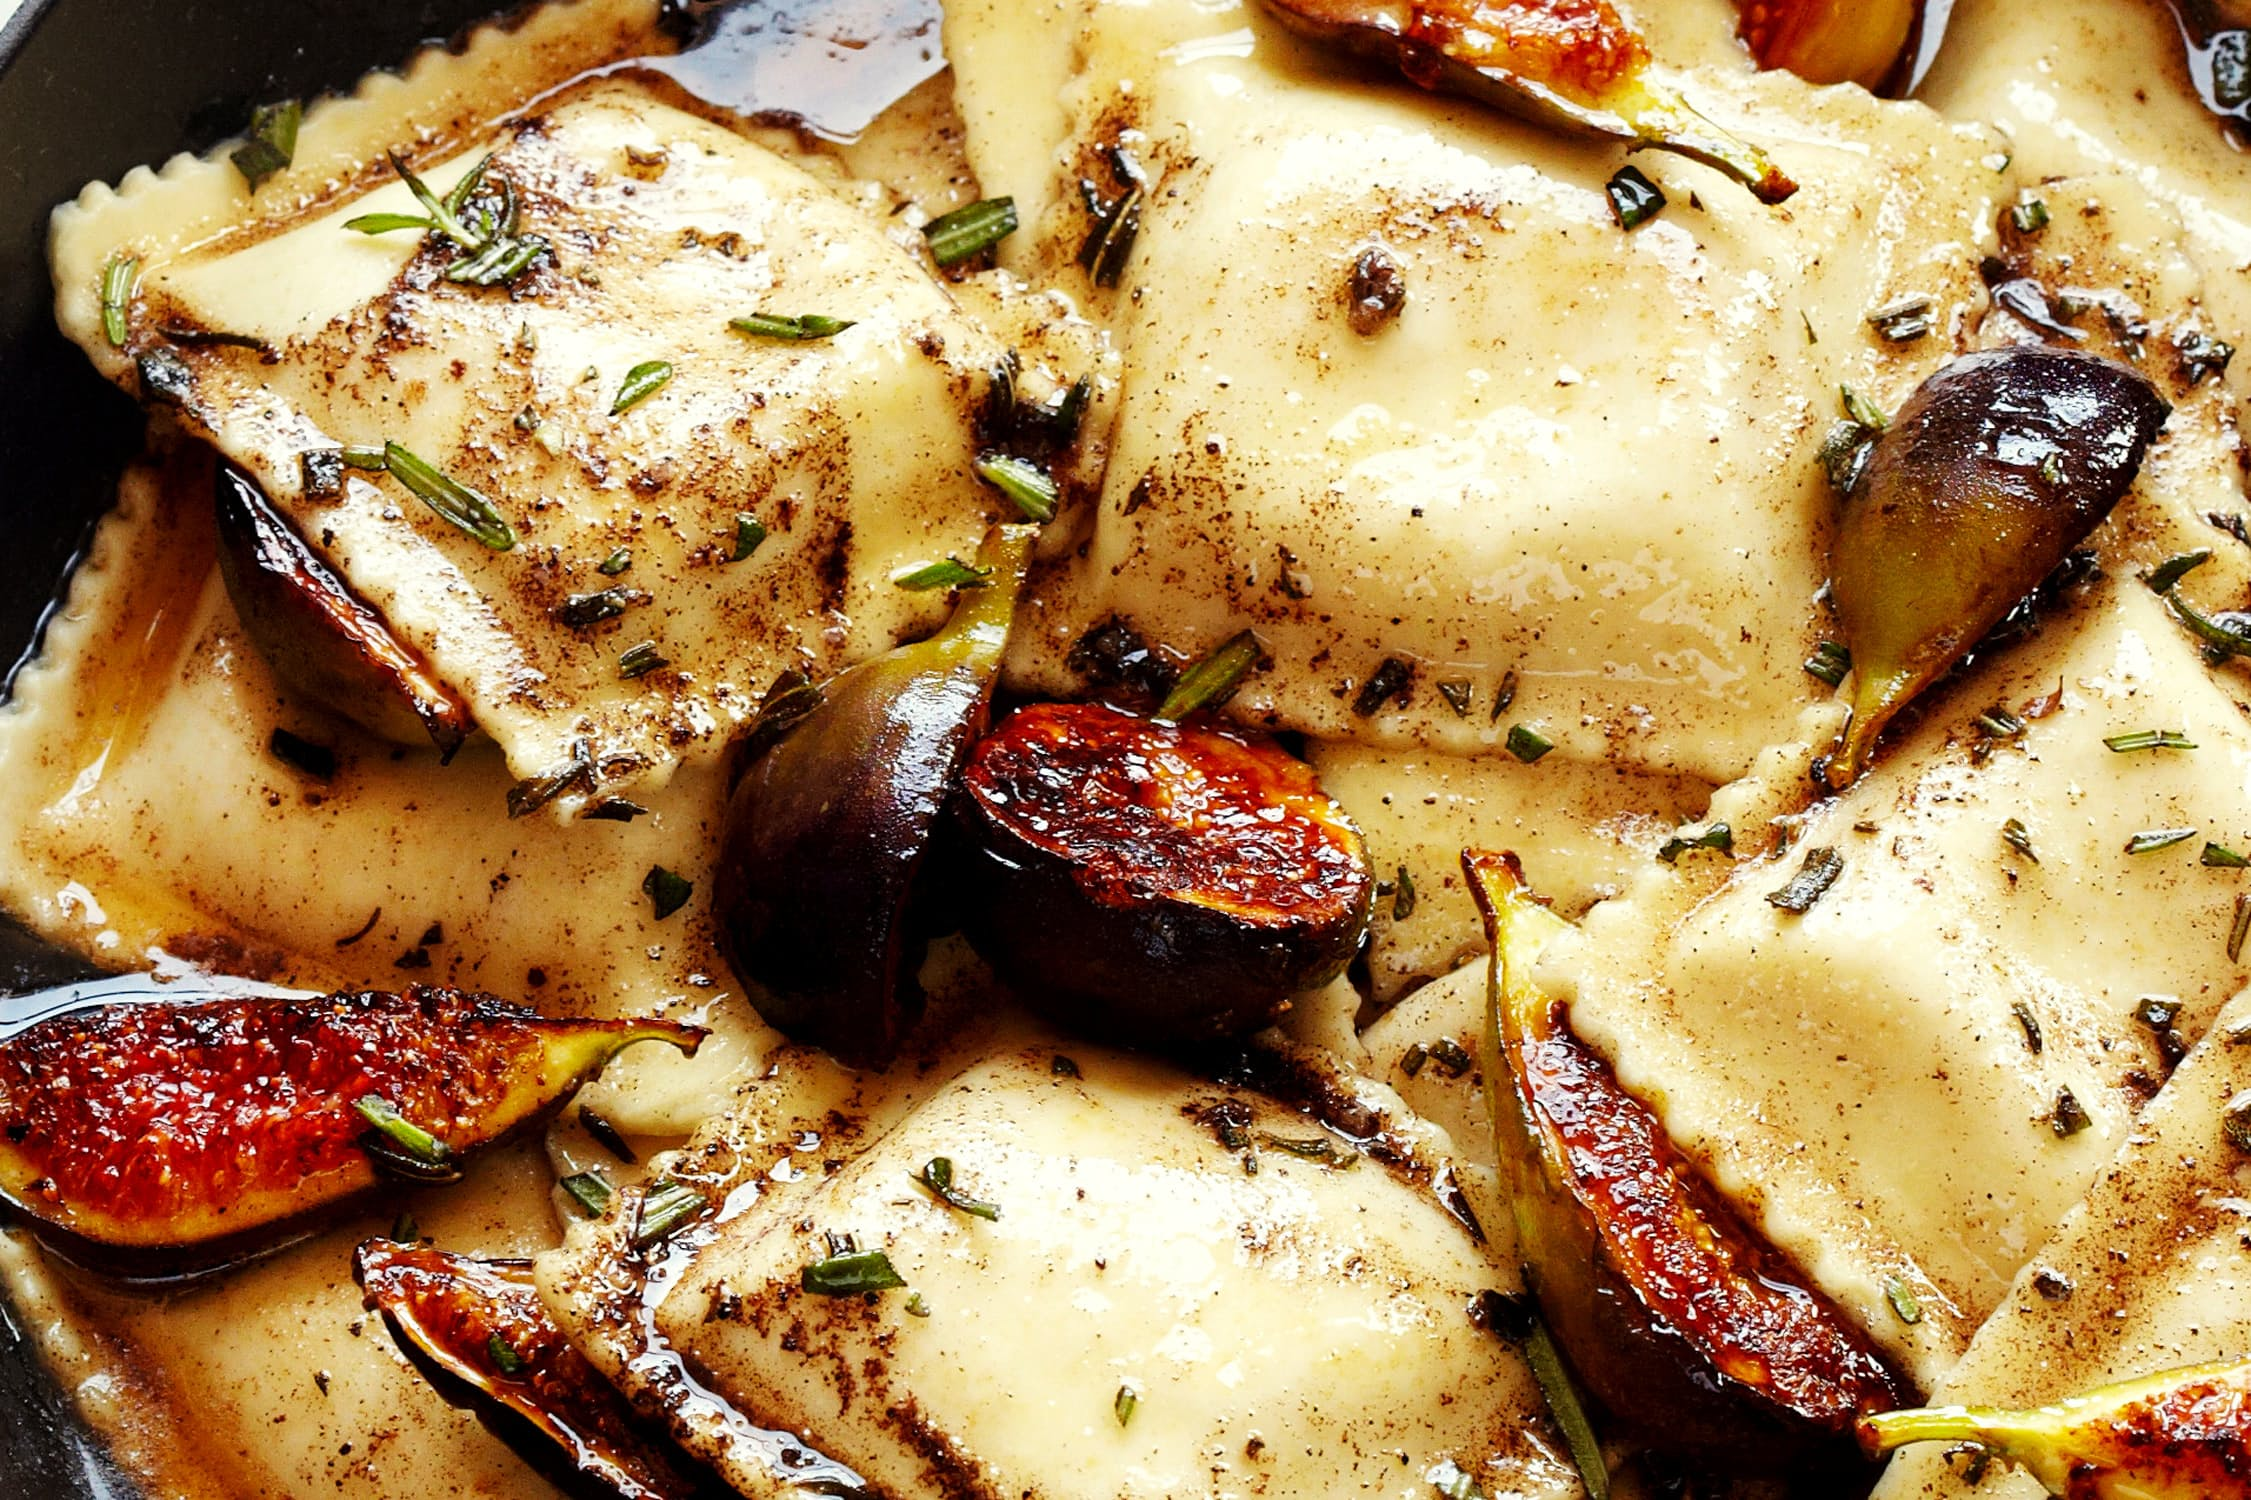 Caramelized Figs and Ravioli with Rosemary Brown Butter & Crispy Prosciutto